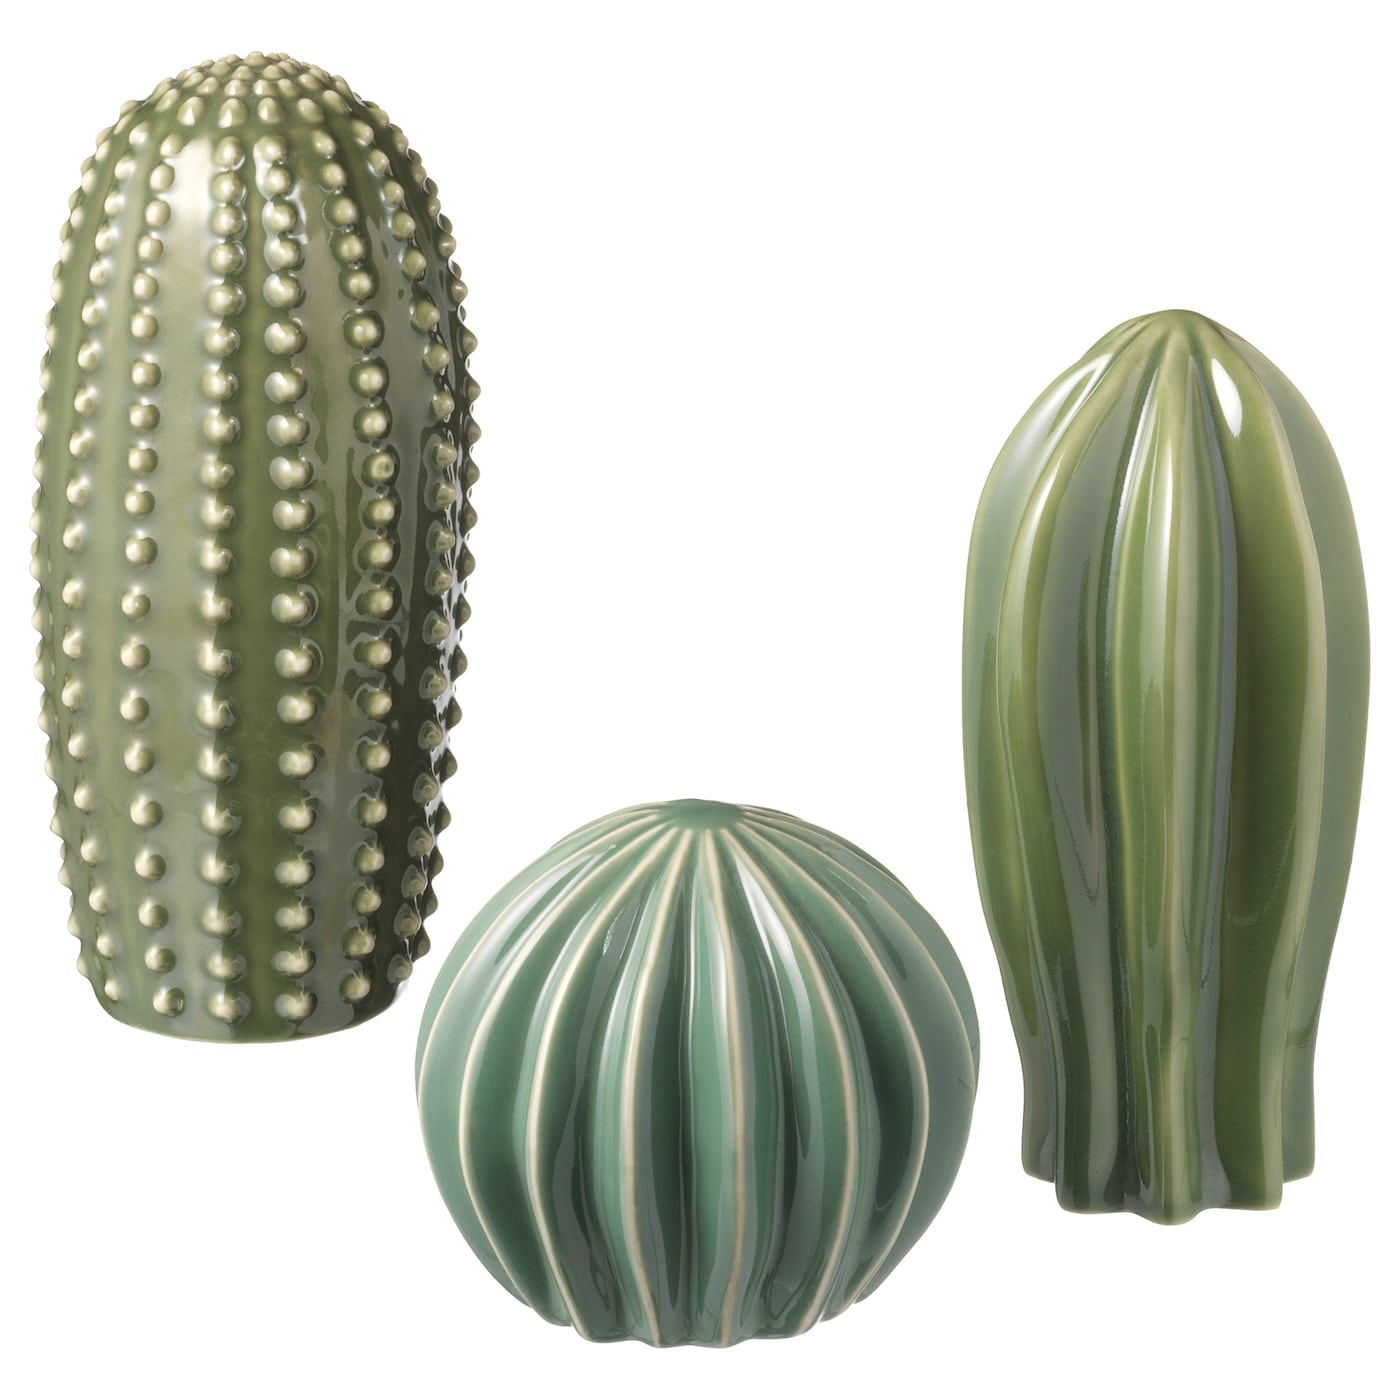 IKEA SJÄLSLIGT decoration set of 3